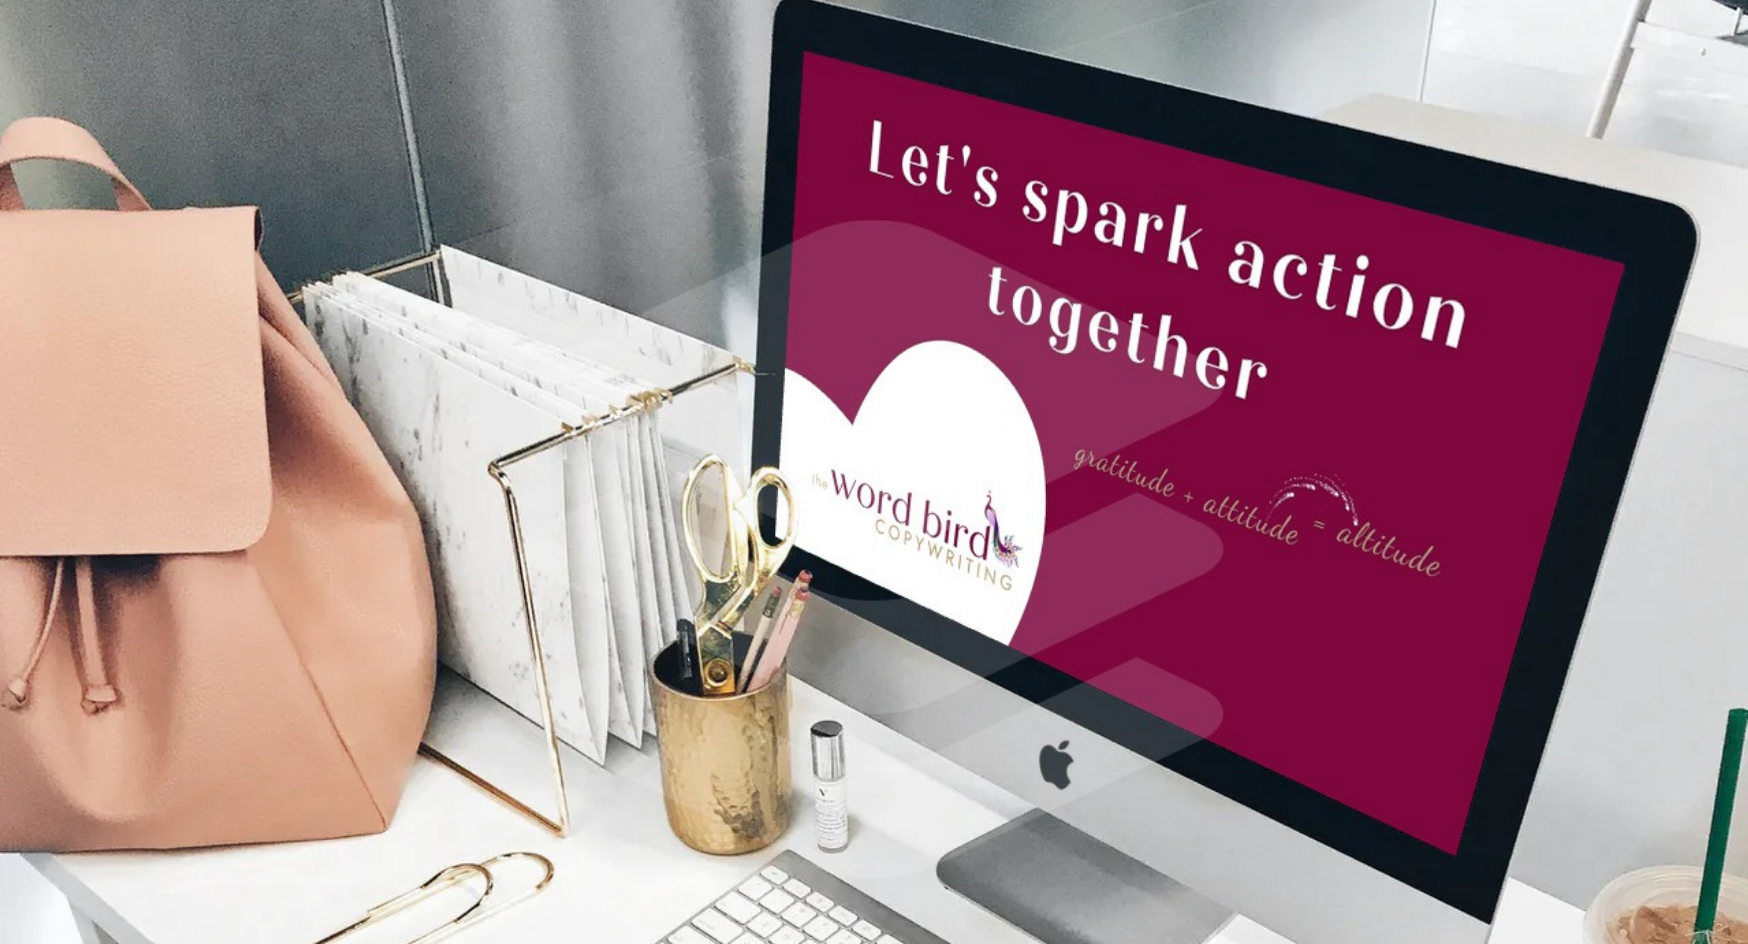 Small and local business copywriter Miranda Packer would love to spark your customers into action